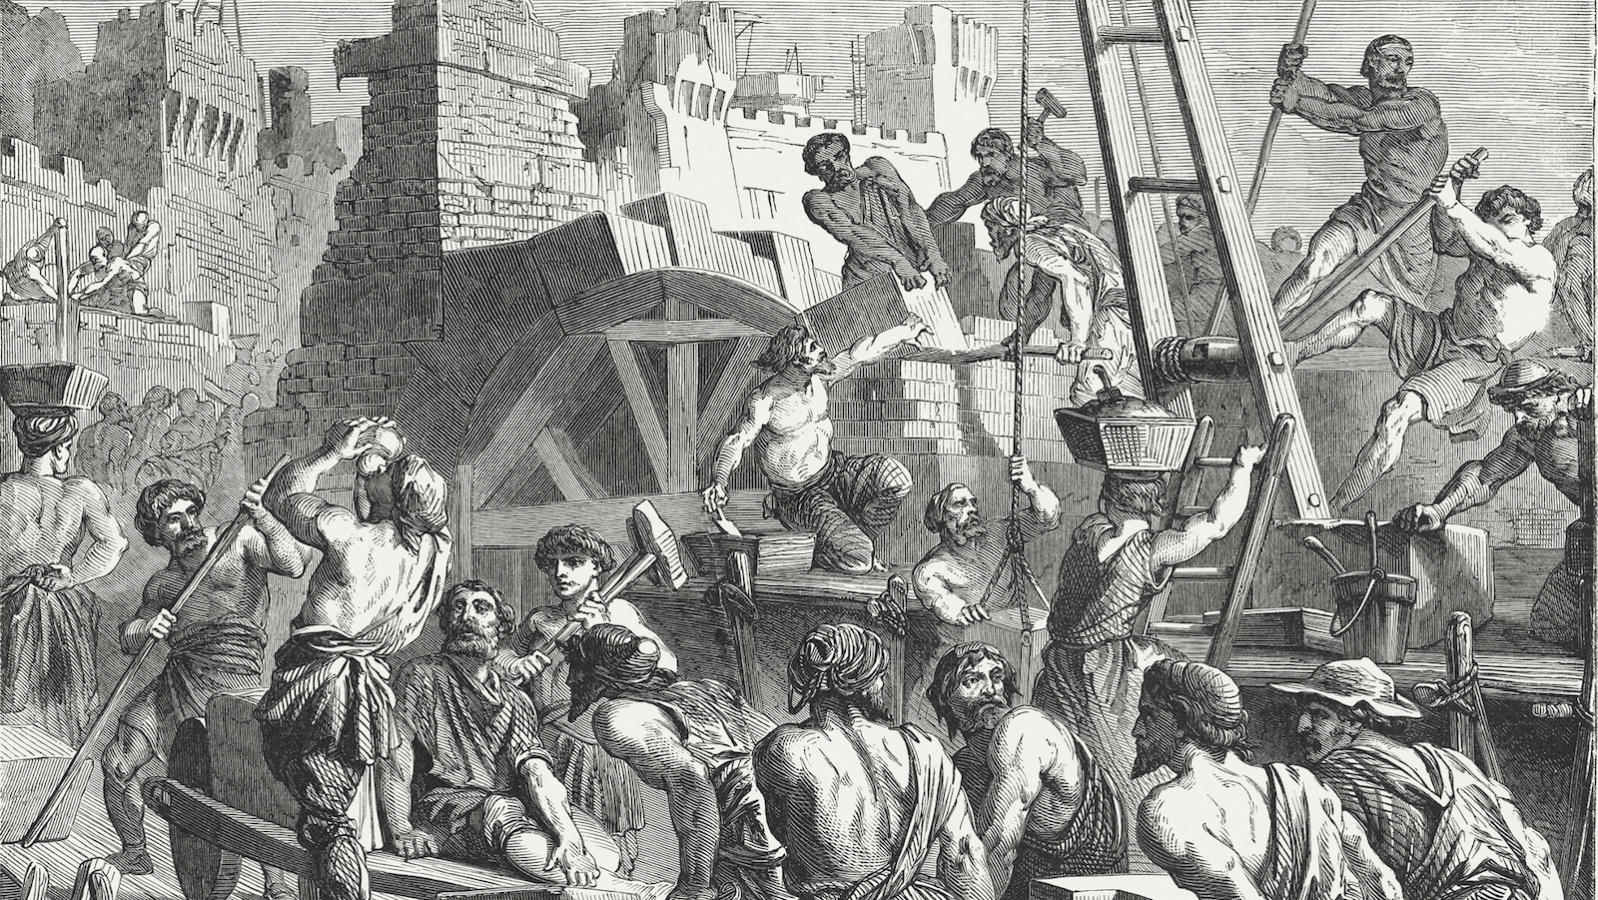 Rebuilding the Wall of Jerusalem (Nehemiah 3-4). Wood engraving, published in 1886. Nehemiah along with those who returned from Babylonia sought to reclaim Judah's former glory, despite major challenges (Images by ZU_09/Getty Images)